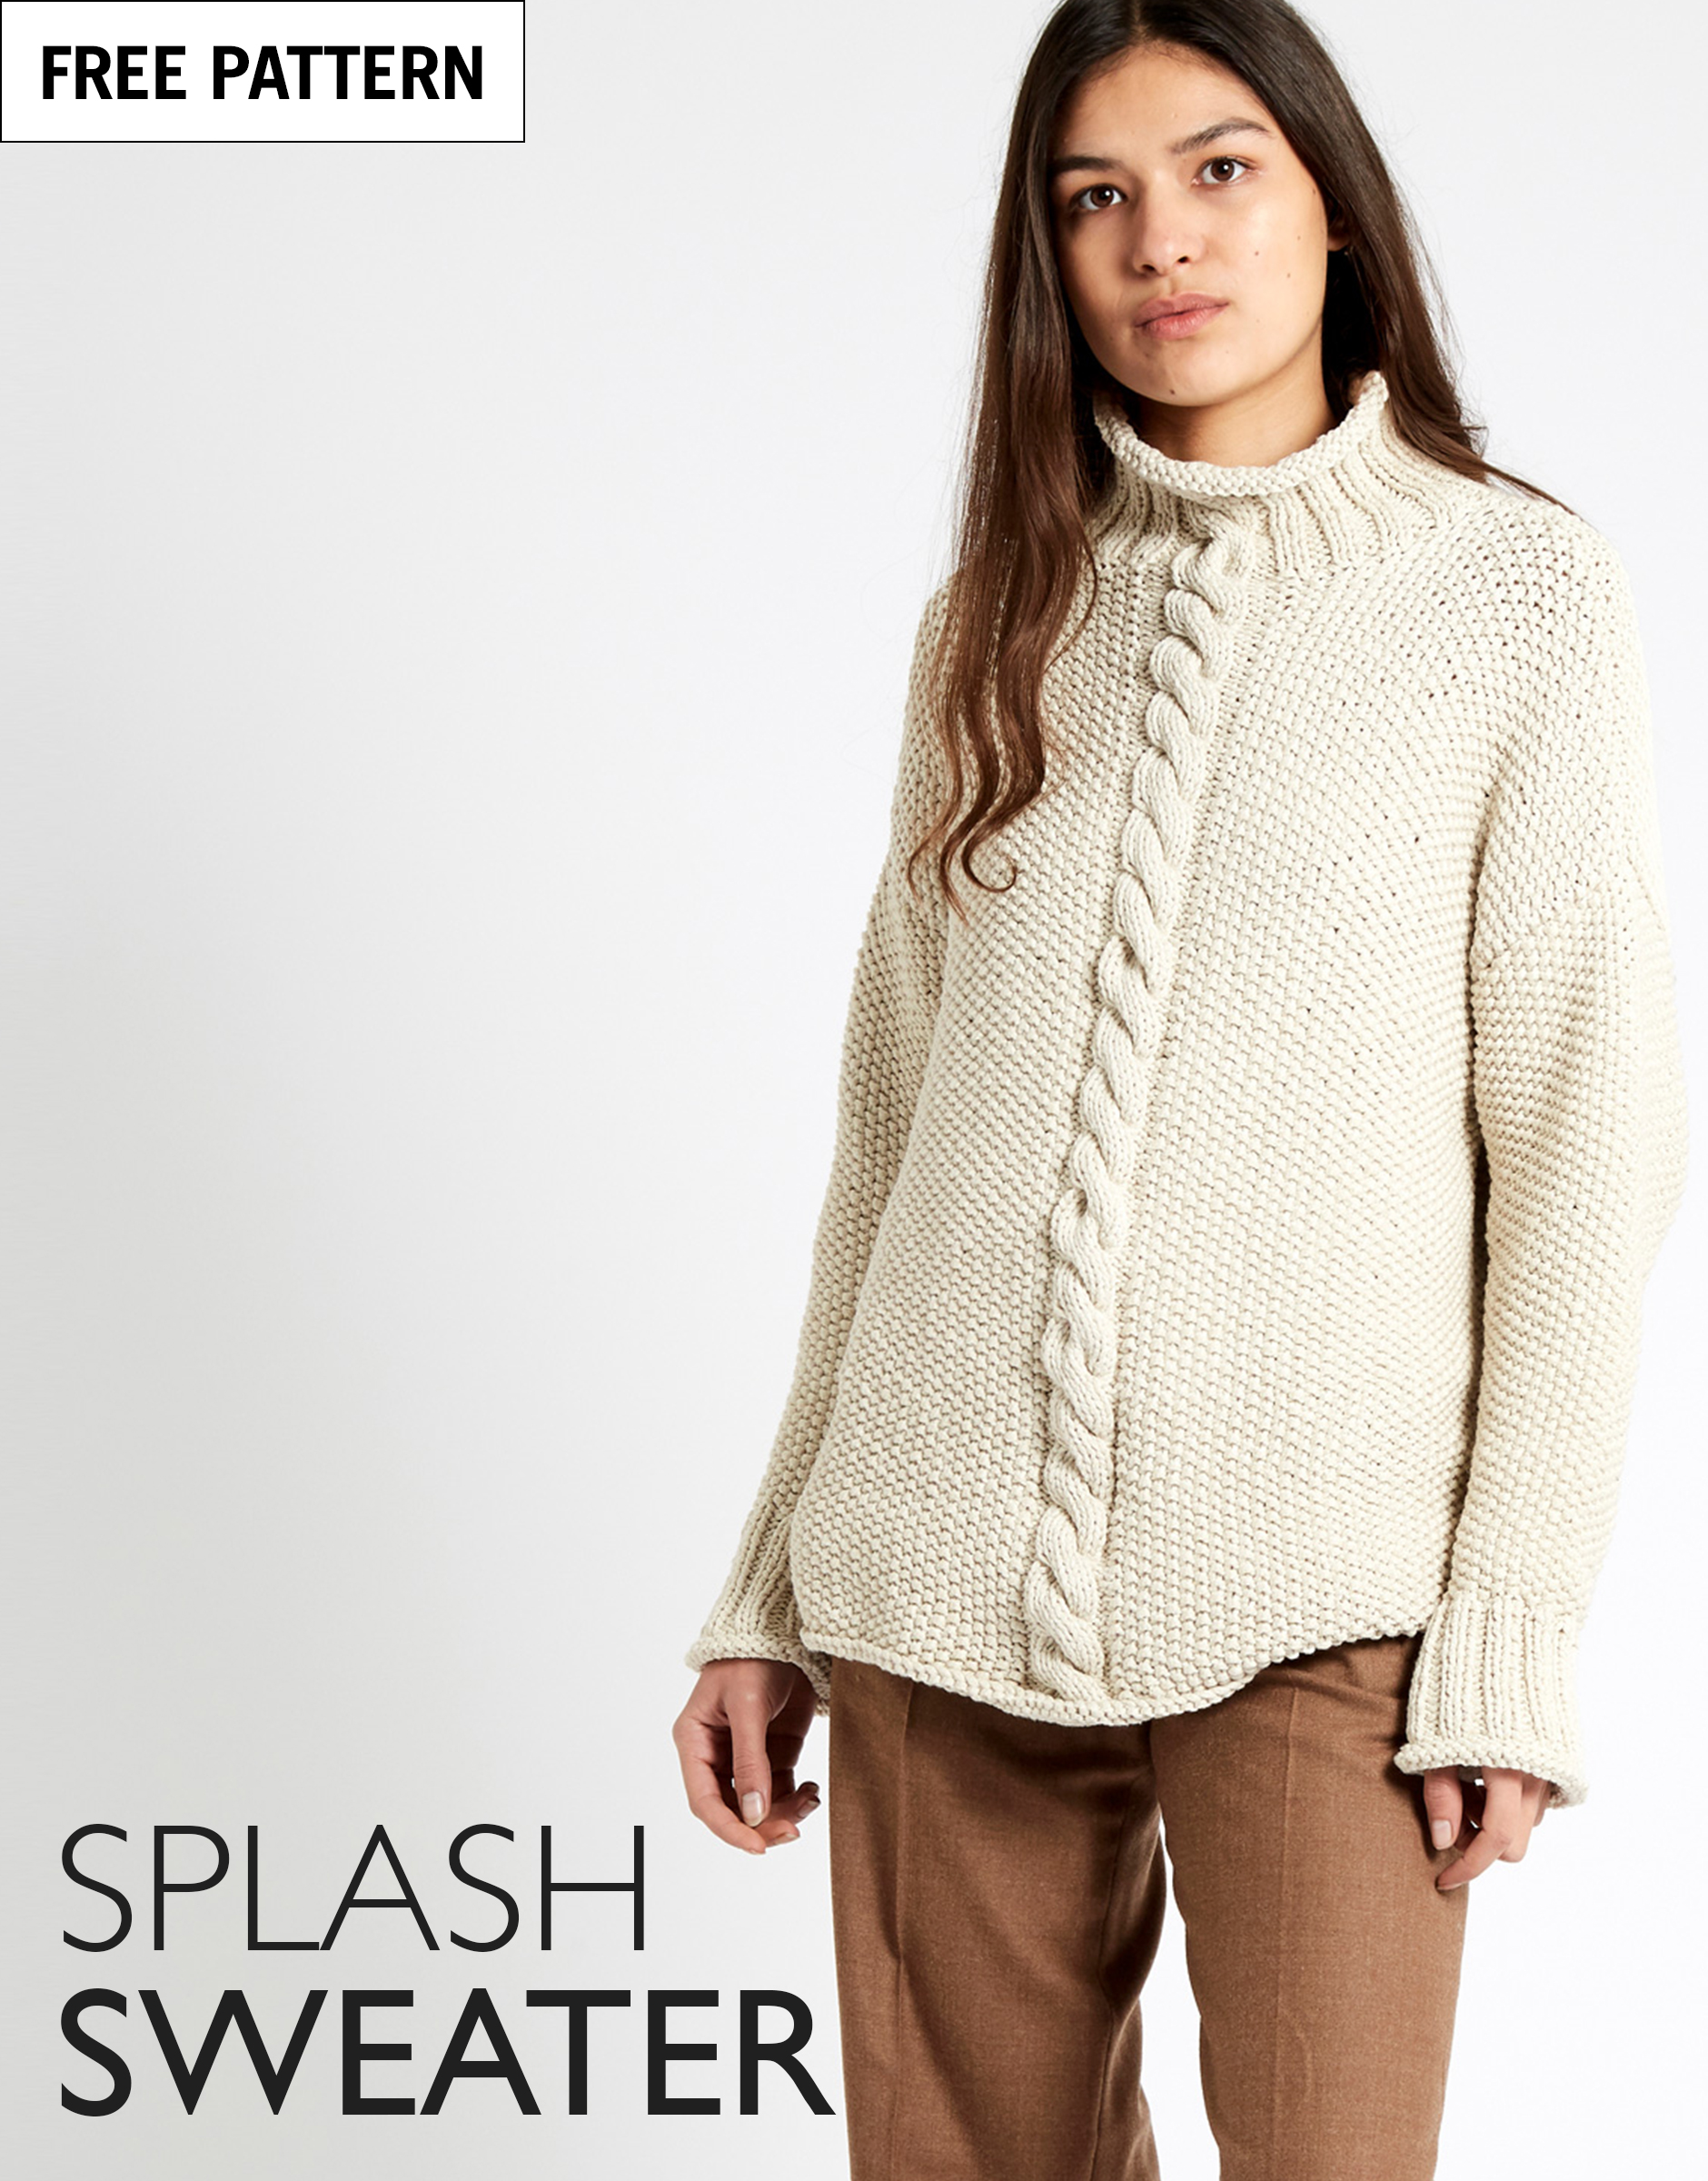 Portrait free pattern index splash sweater %281%29